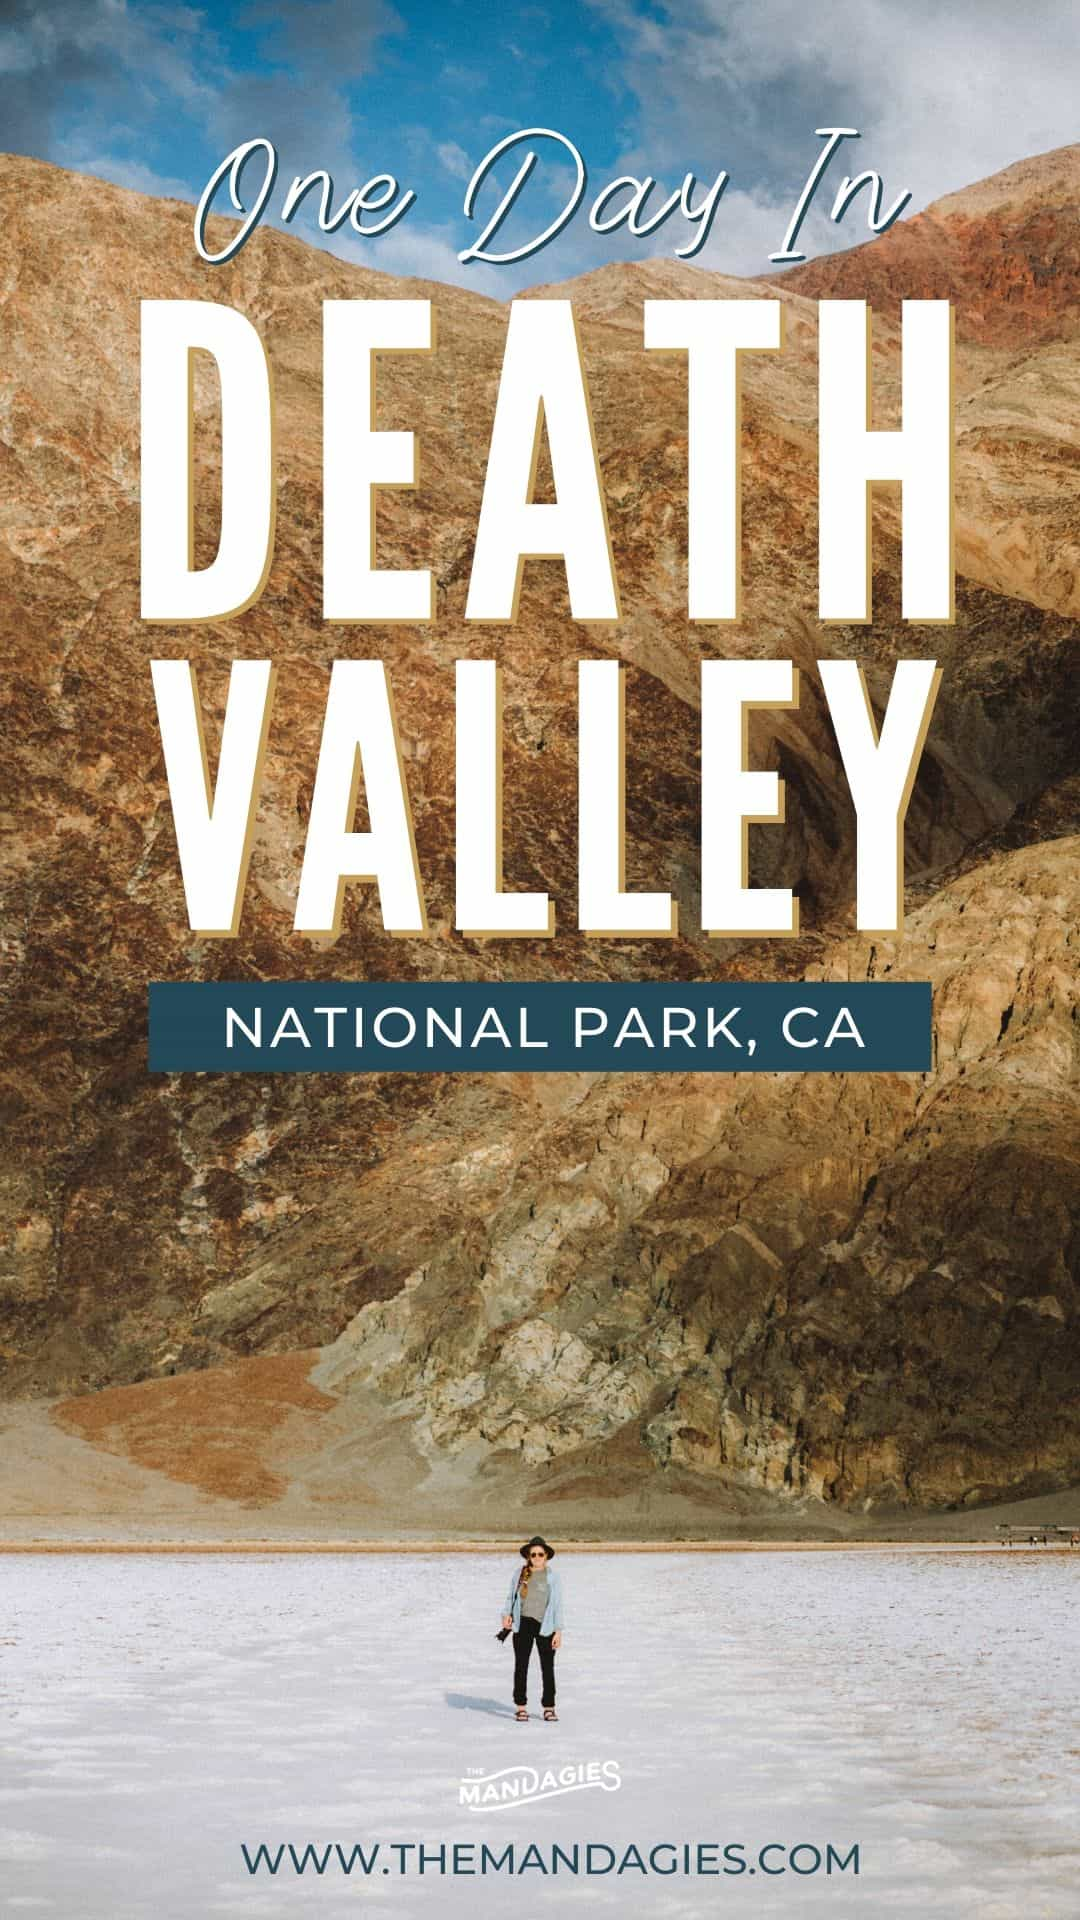 Want to explore death valley but don't have a lot of time? We're showing you how to explore Death Valley in one day! We're sharing epic stops like Zabriskie Point, Mesquite Sand Dunes, and Badwater Basin for a fun and quick trip to this Southern California desert. Save this post for your next Southwest road trip! #california #roadtrip #deathvalley #desert #deathvalleynationalpark #badwaterbasin #nature #photography #southerncalifornia